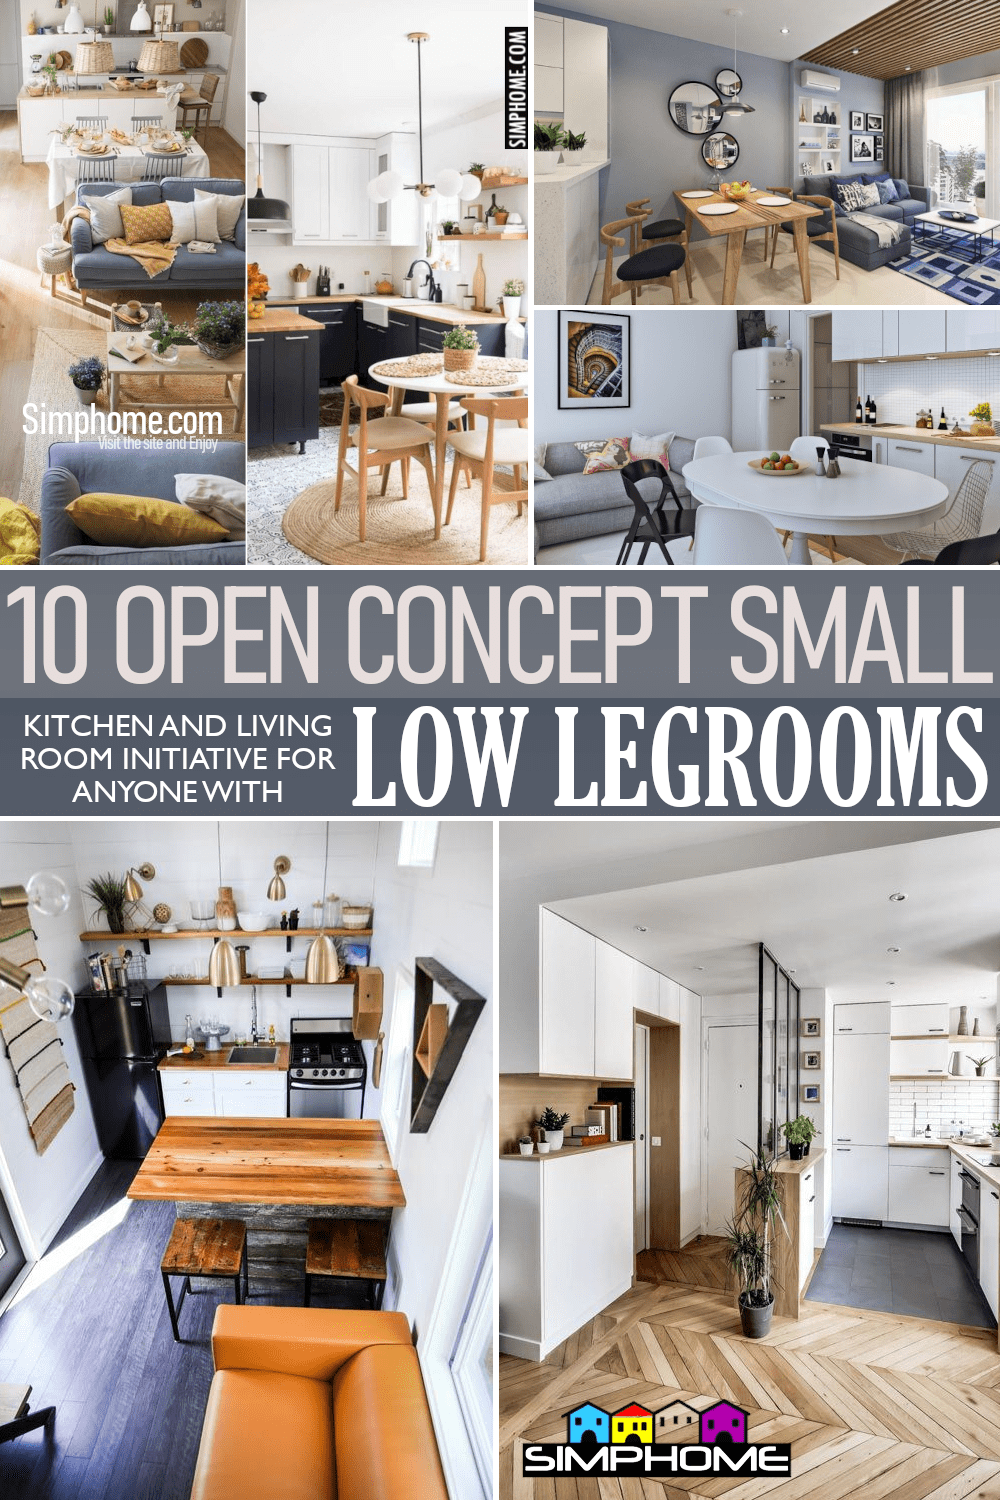 10 Open Concept Small Living Room and Kitchen Ideas via Simphome.comFeatured